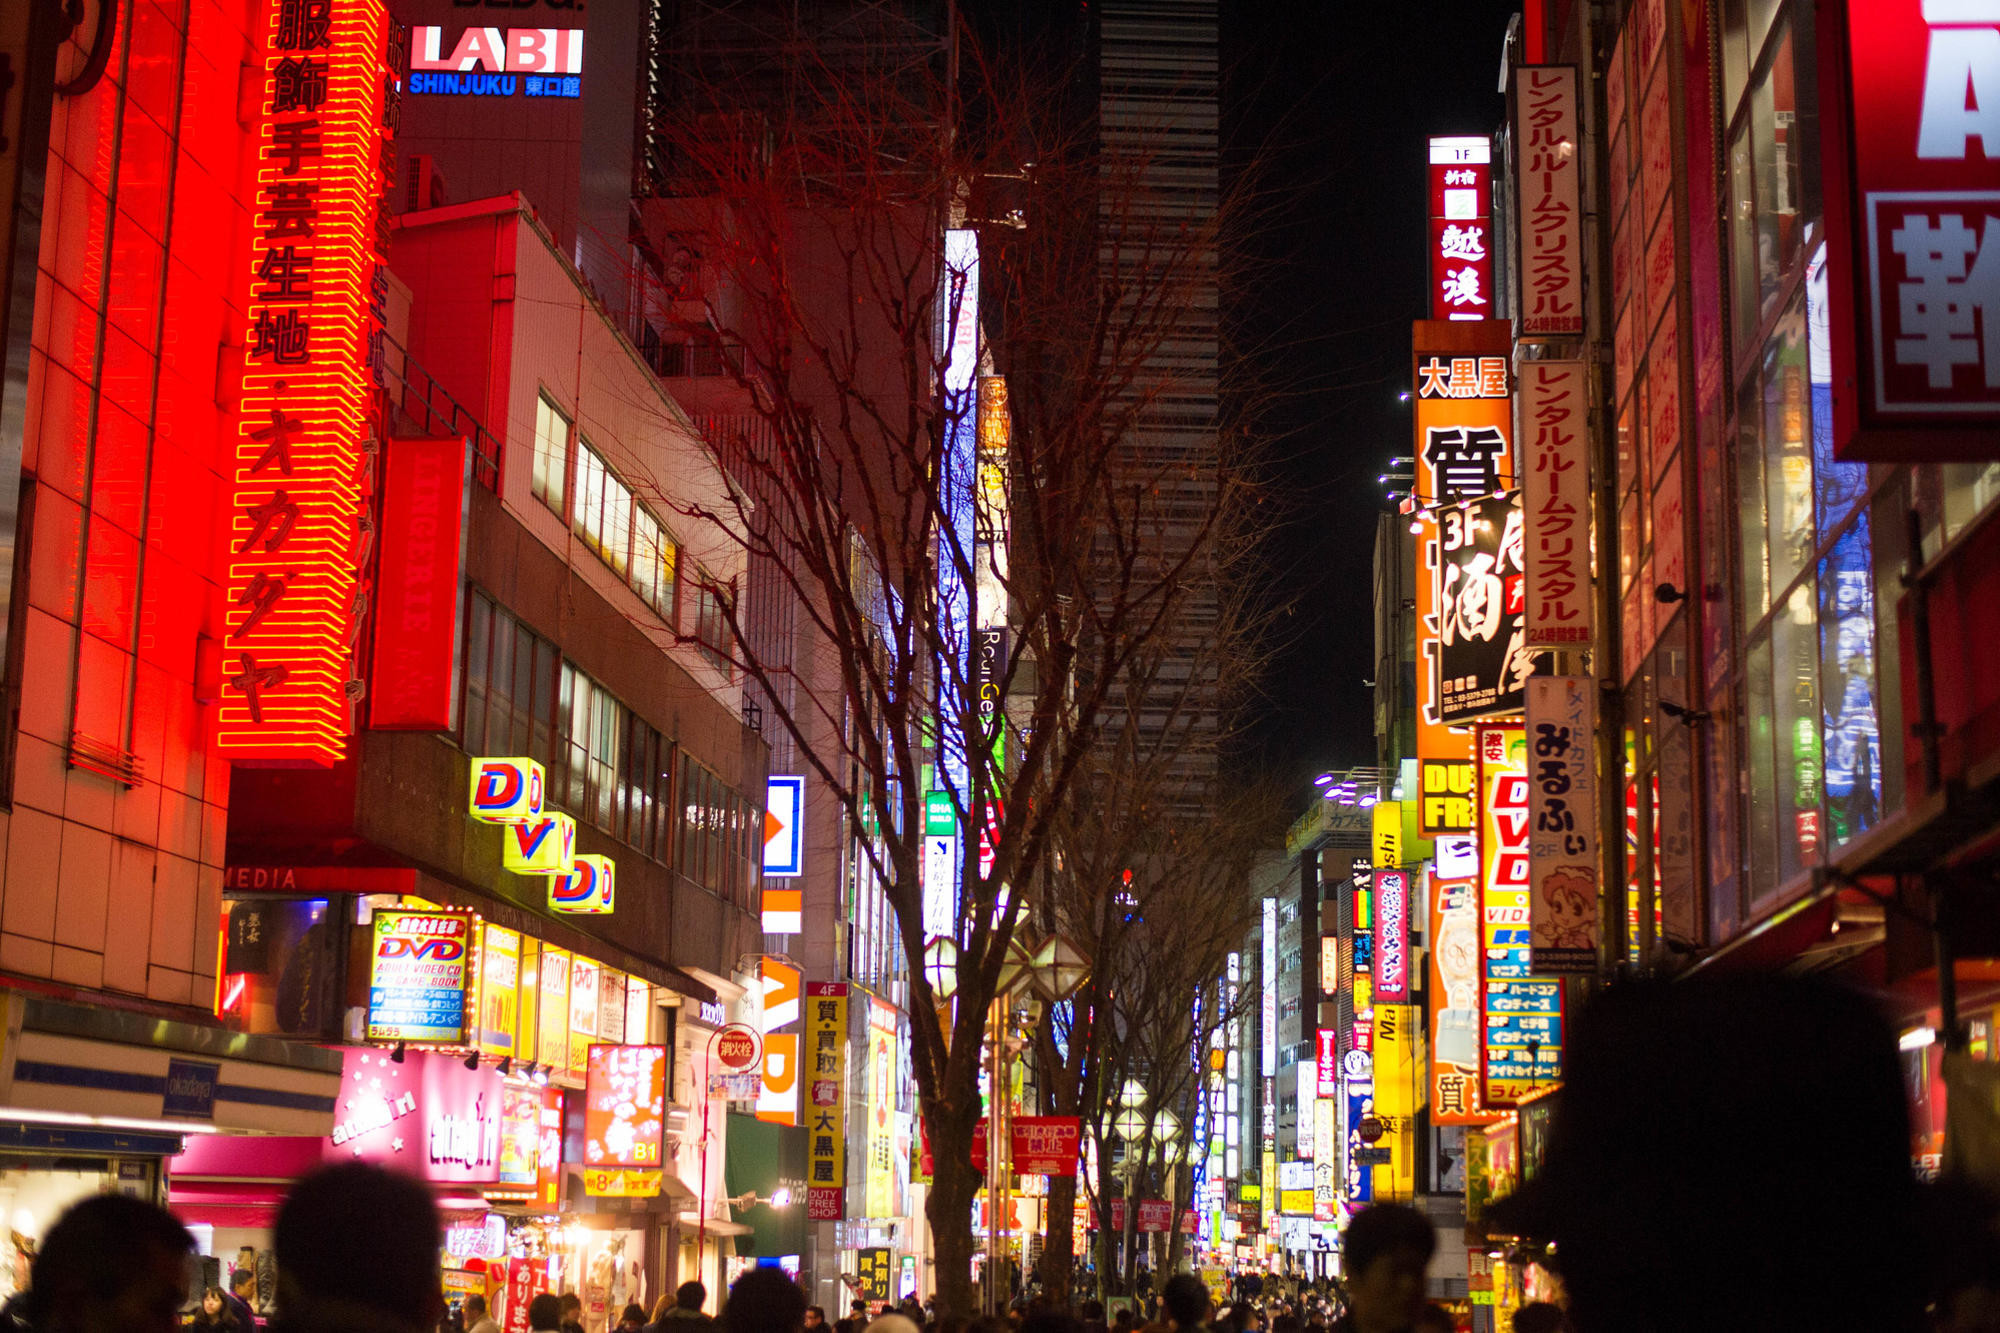 Shinjuku's neon-lit, crowded streets at night in Tokyo